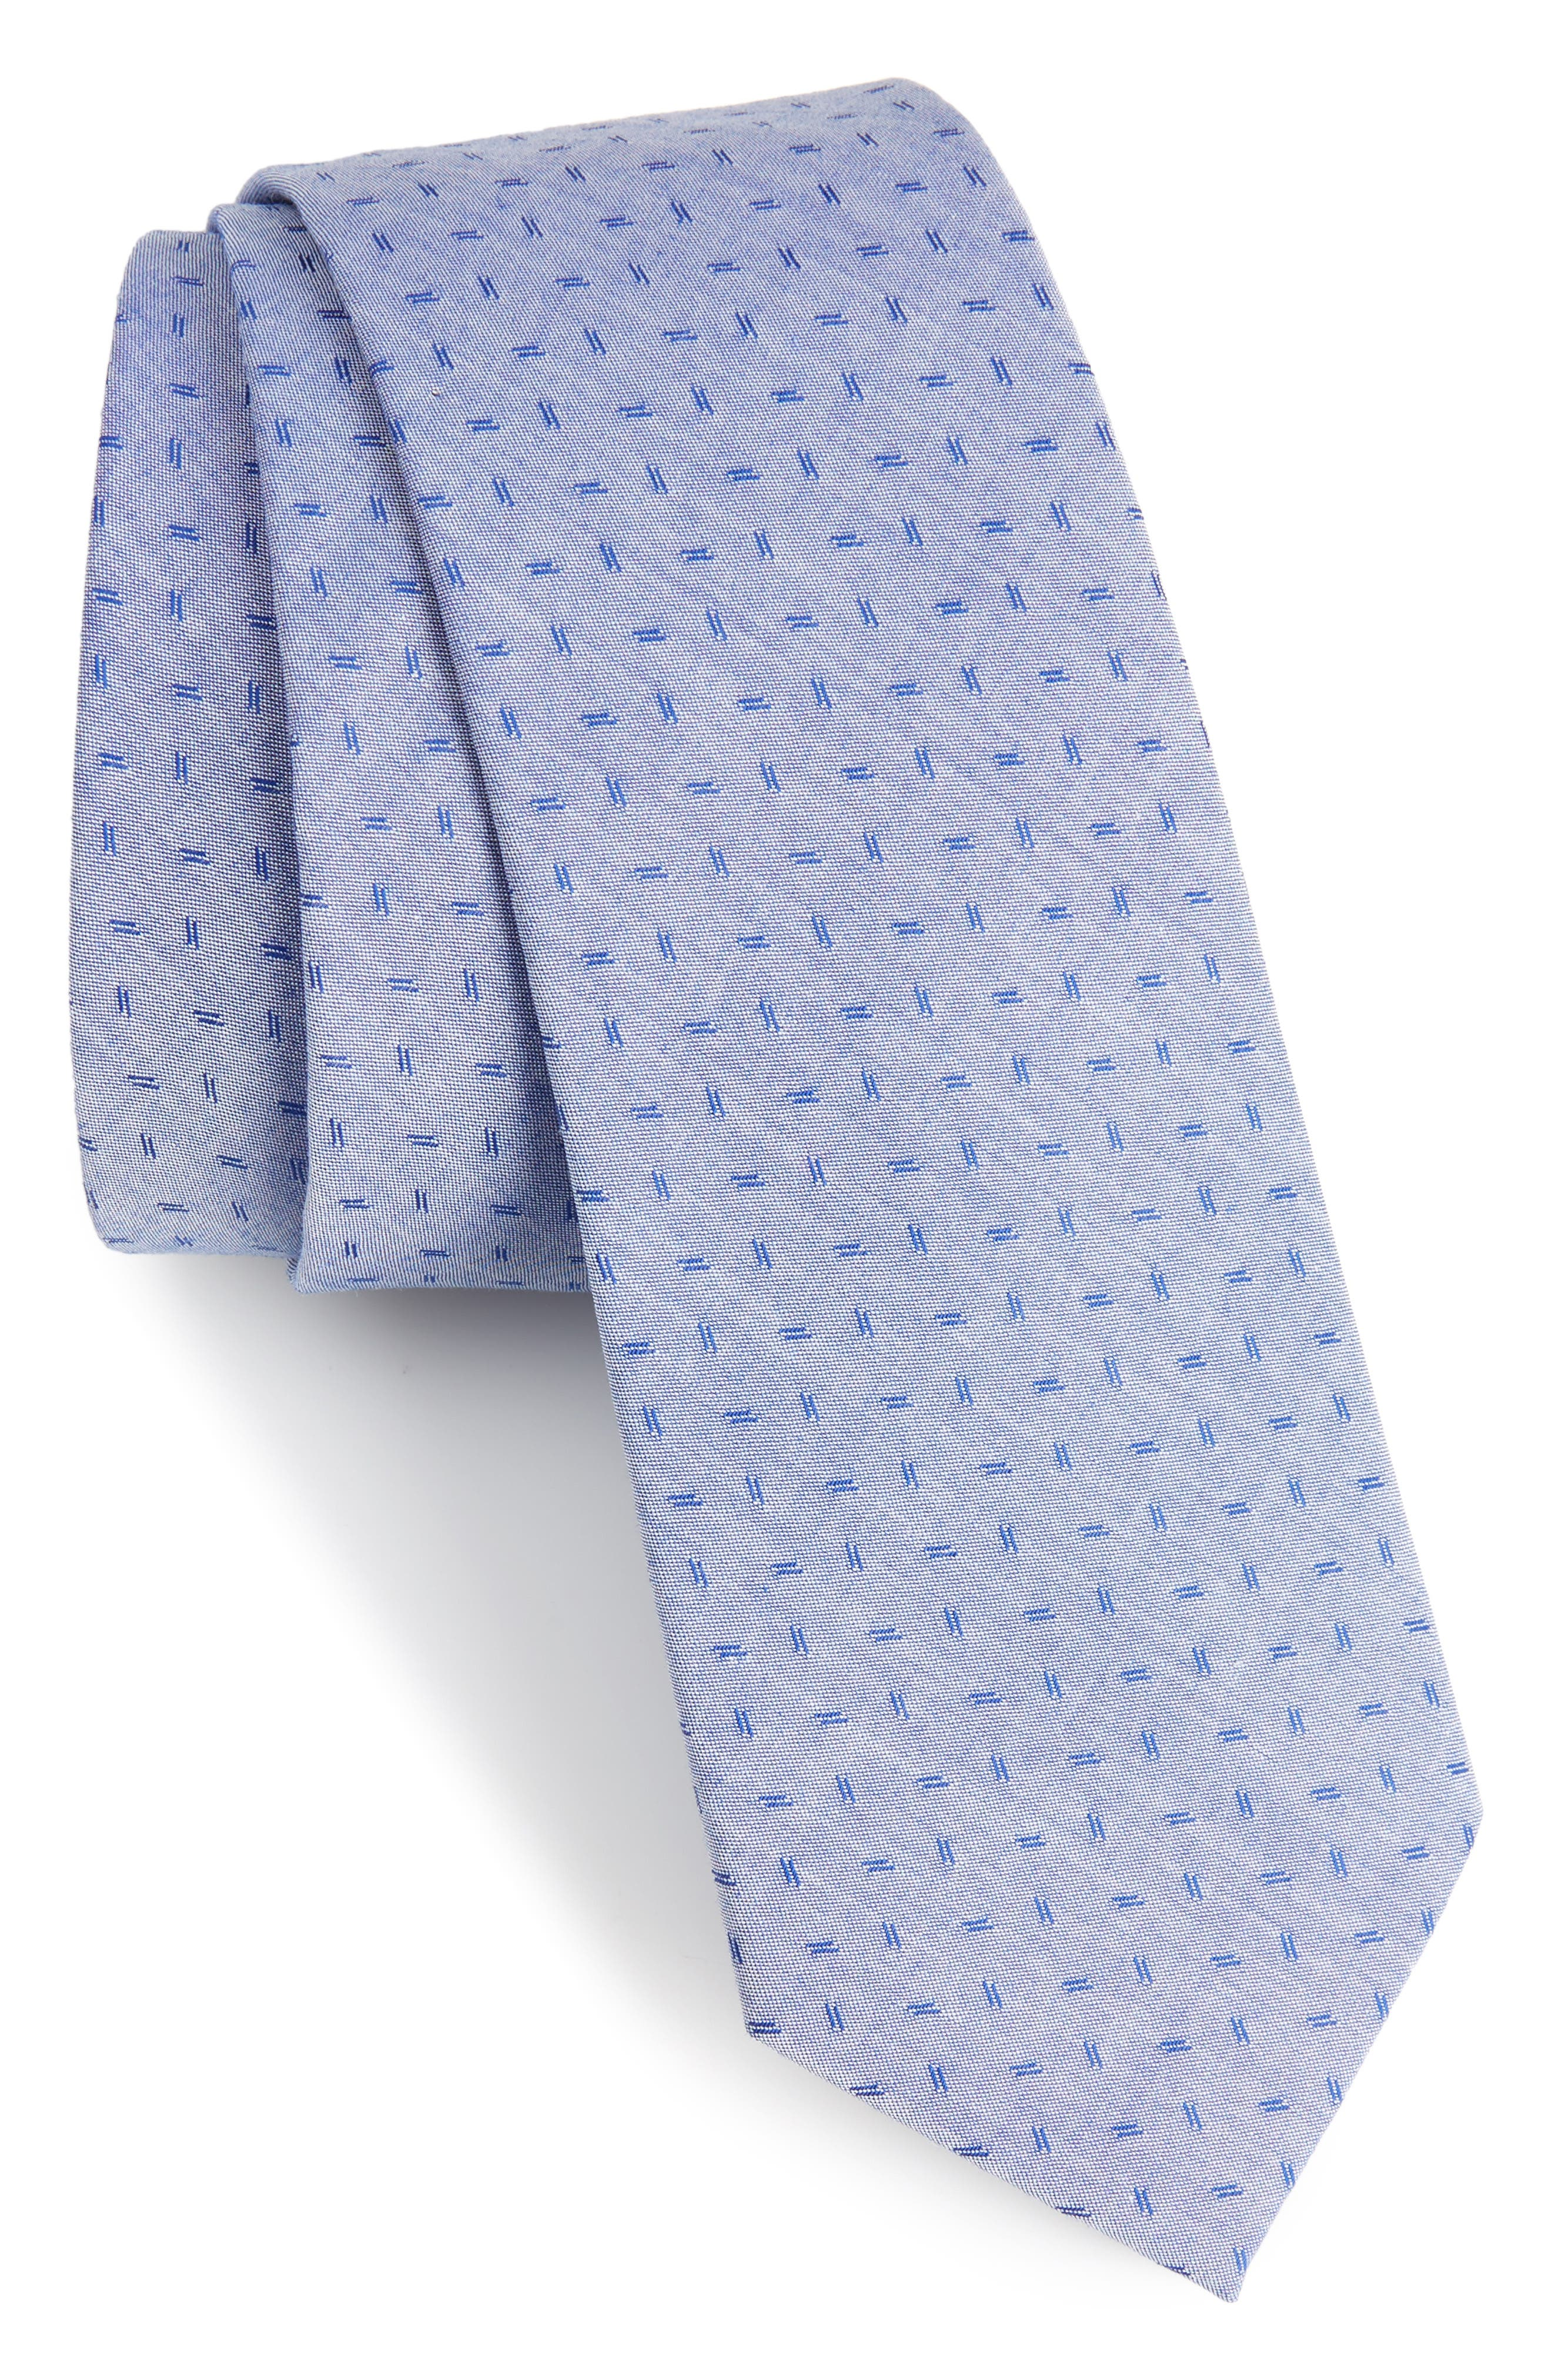 Indigo Microgrid Cotton Skinny Tie,                         Main,                         color, 400